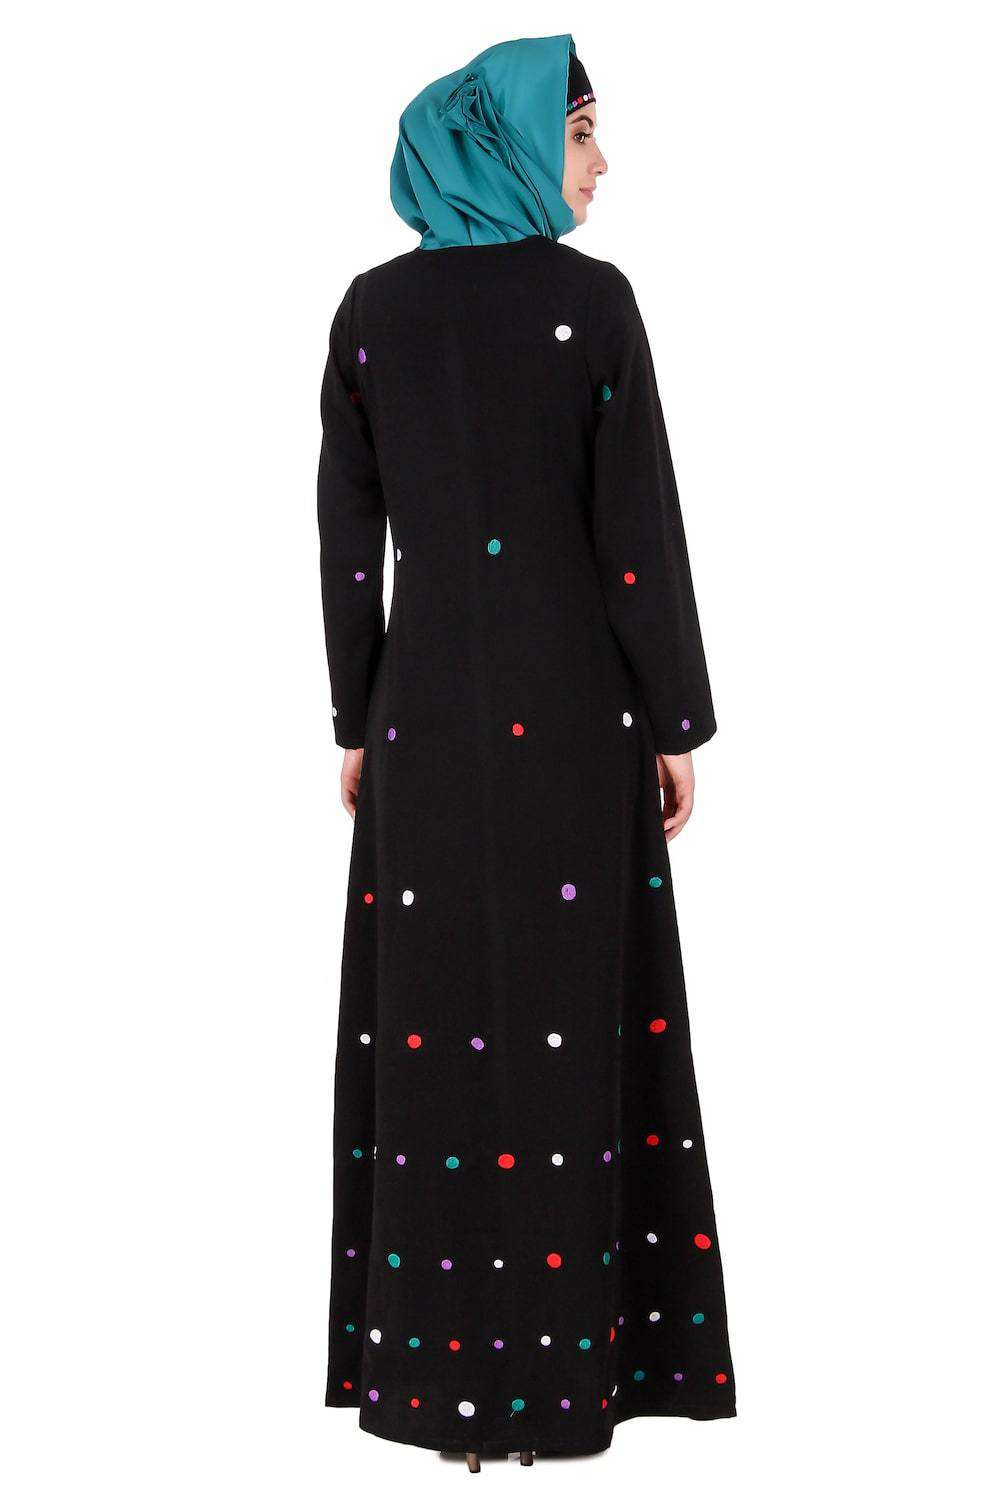 Colorful Embroidered Polka Dot Abaya